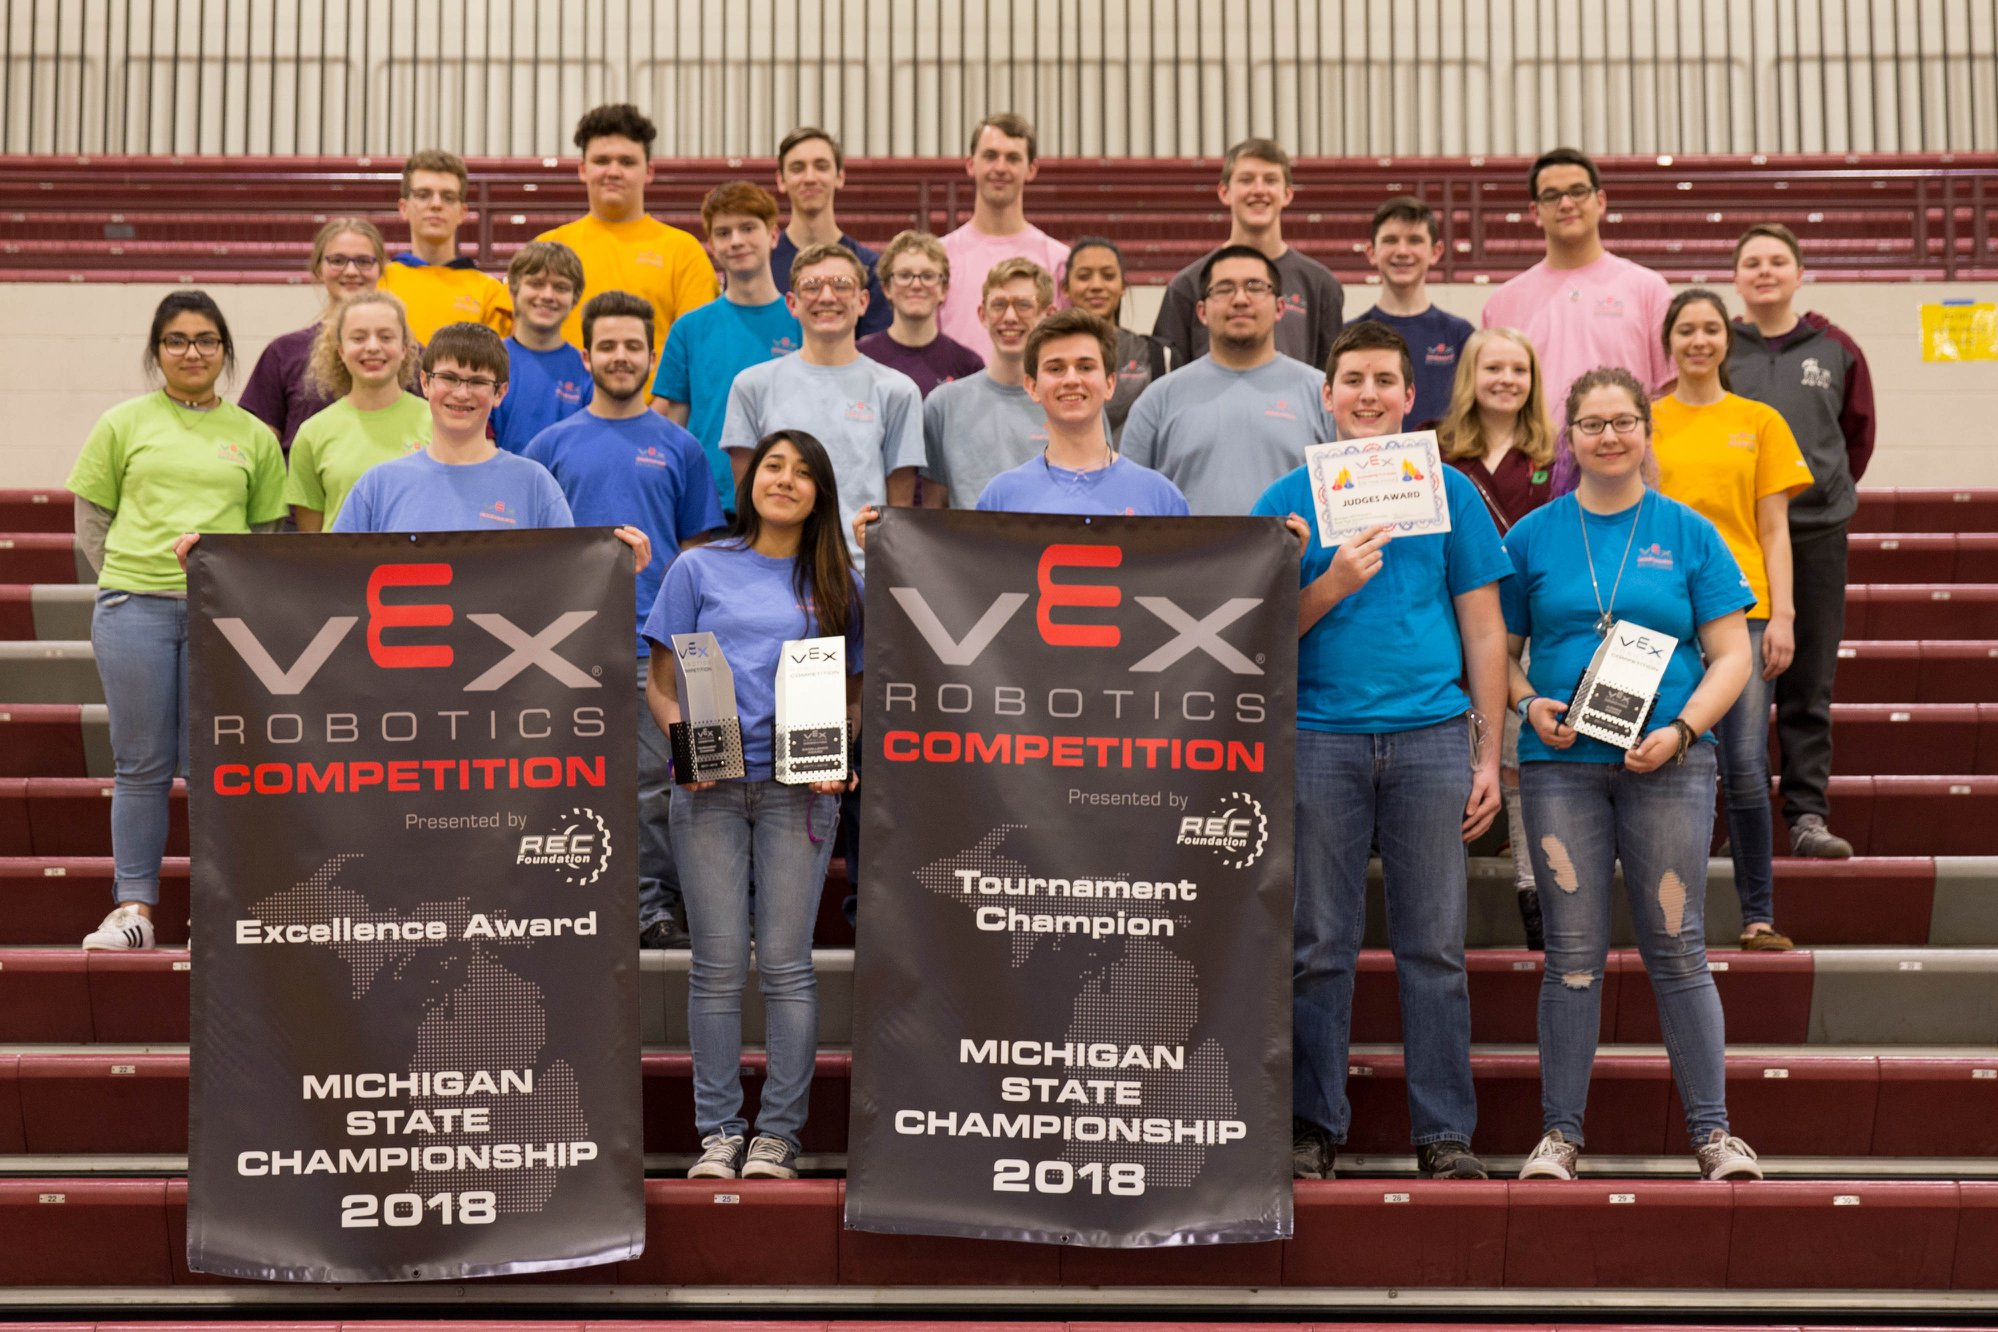 RoboDawg team 244A wins the Michigan VEX State Tournament and Excellence Award in 2018.